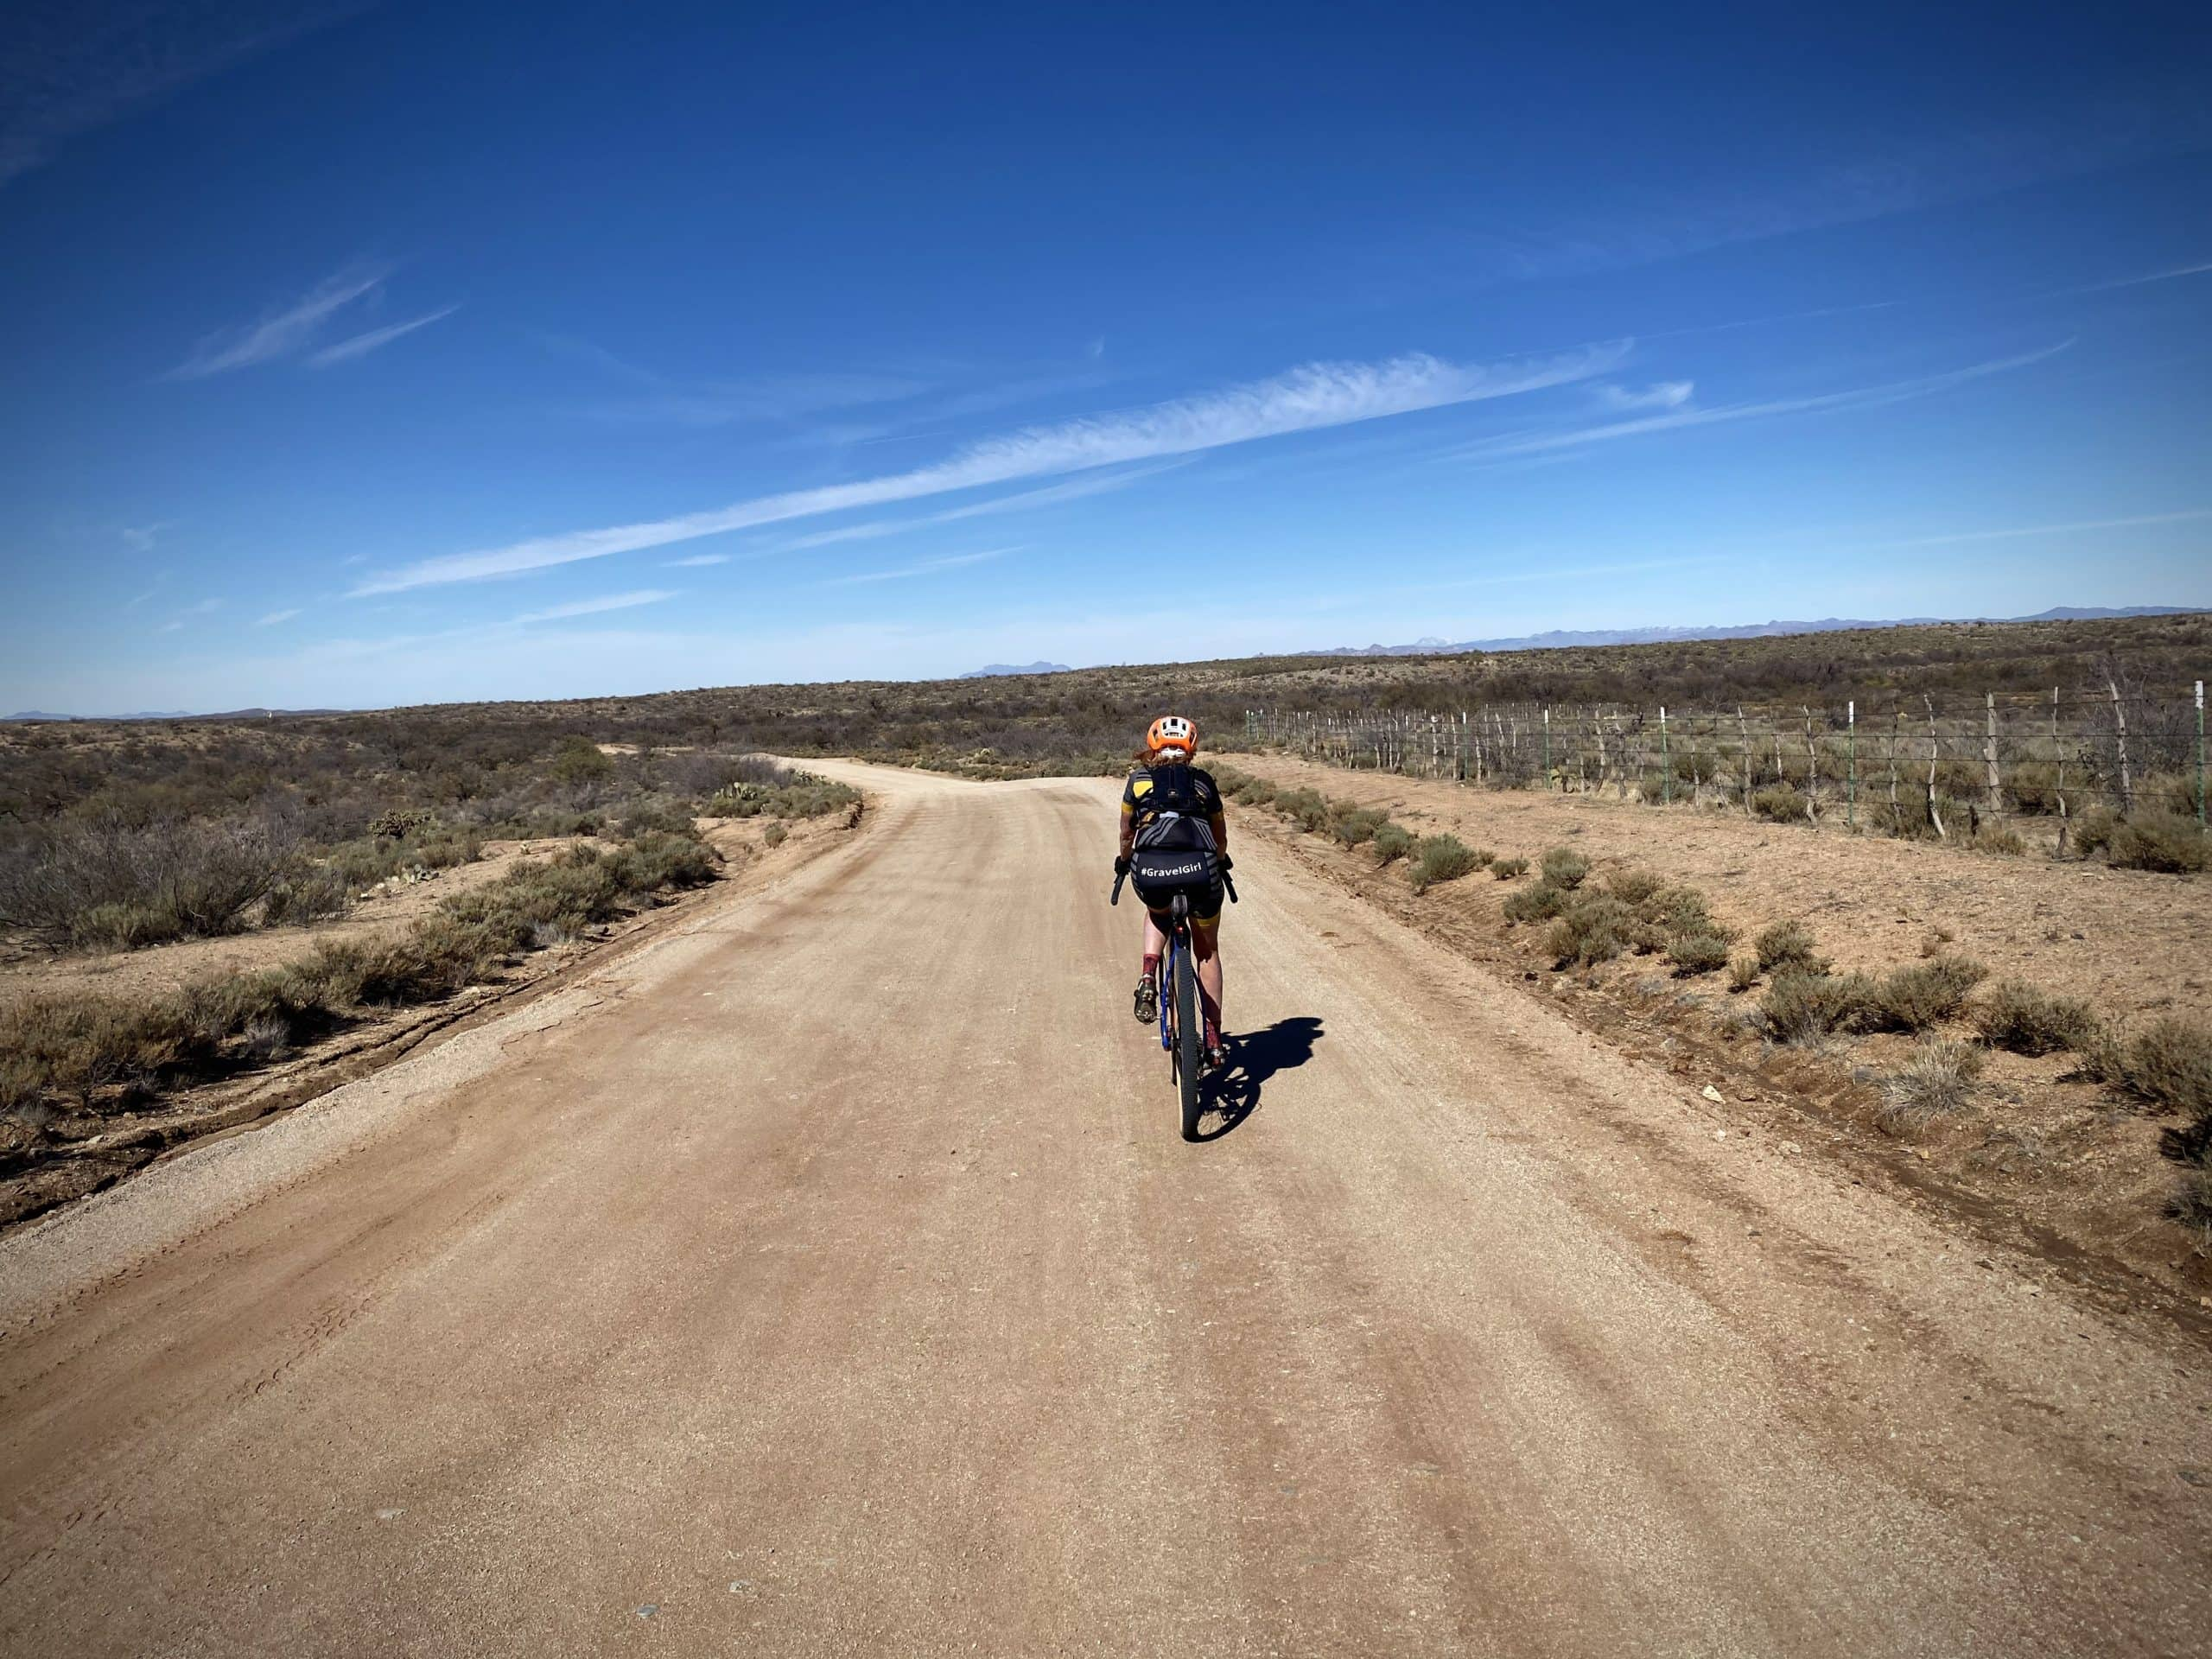 Woman cyclist on Barkersville road south of Florence, Arizona.